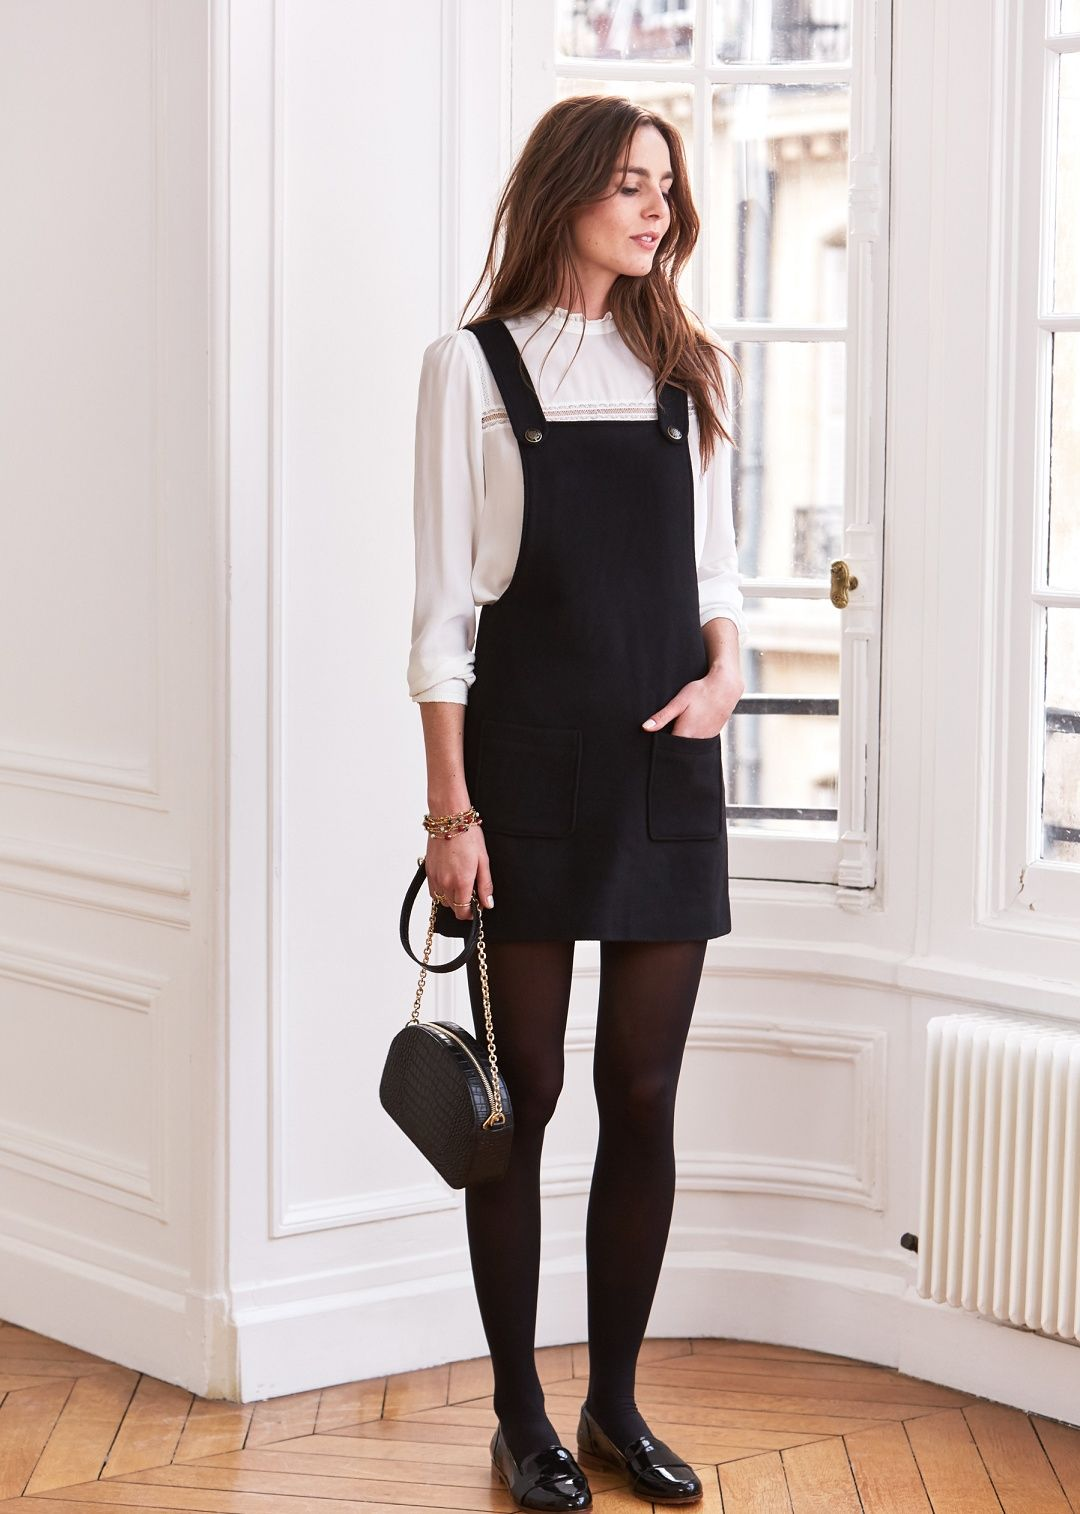 Sezane's Winter Collection Launched Today - Katie Considers